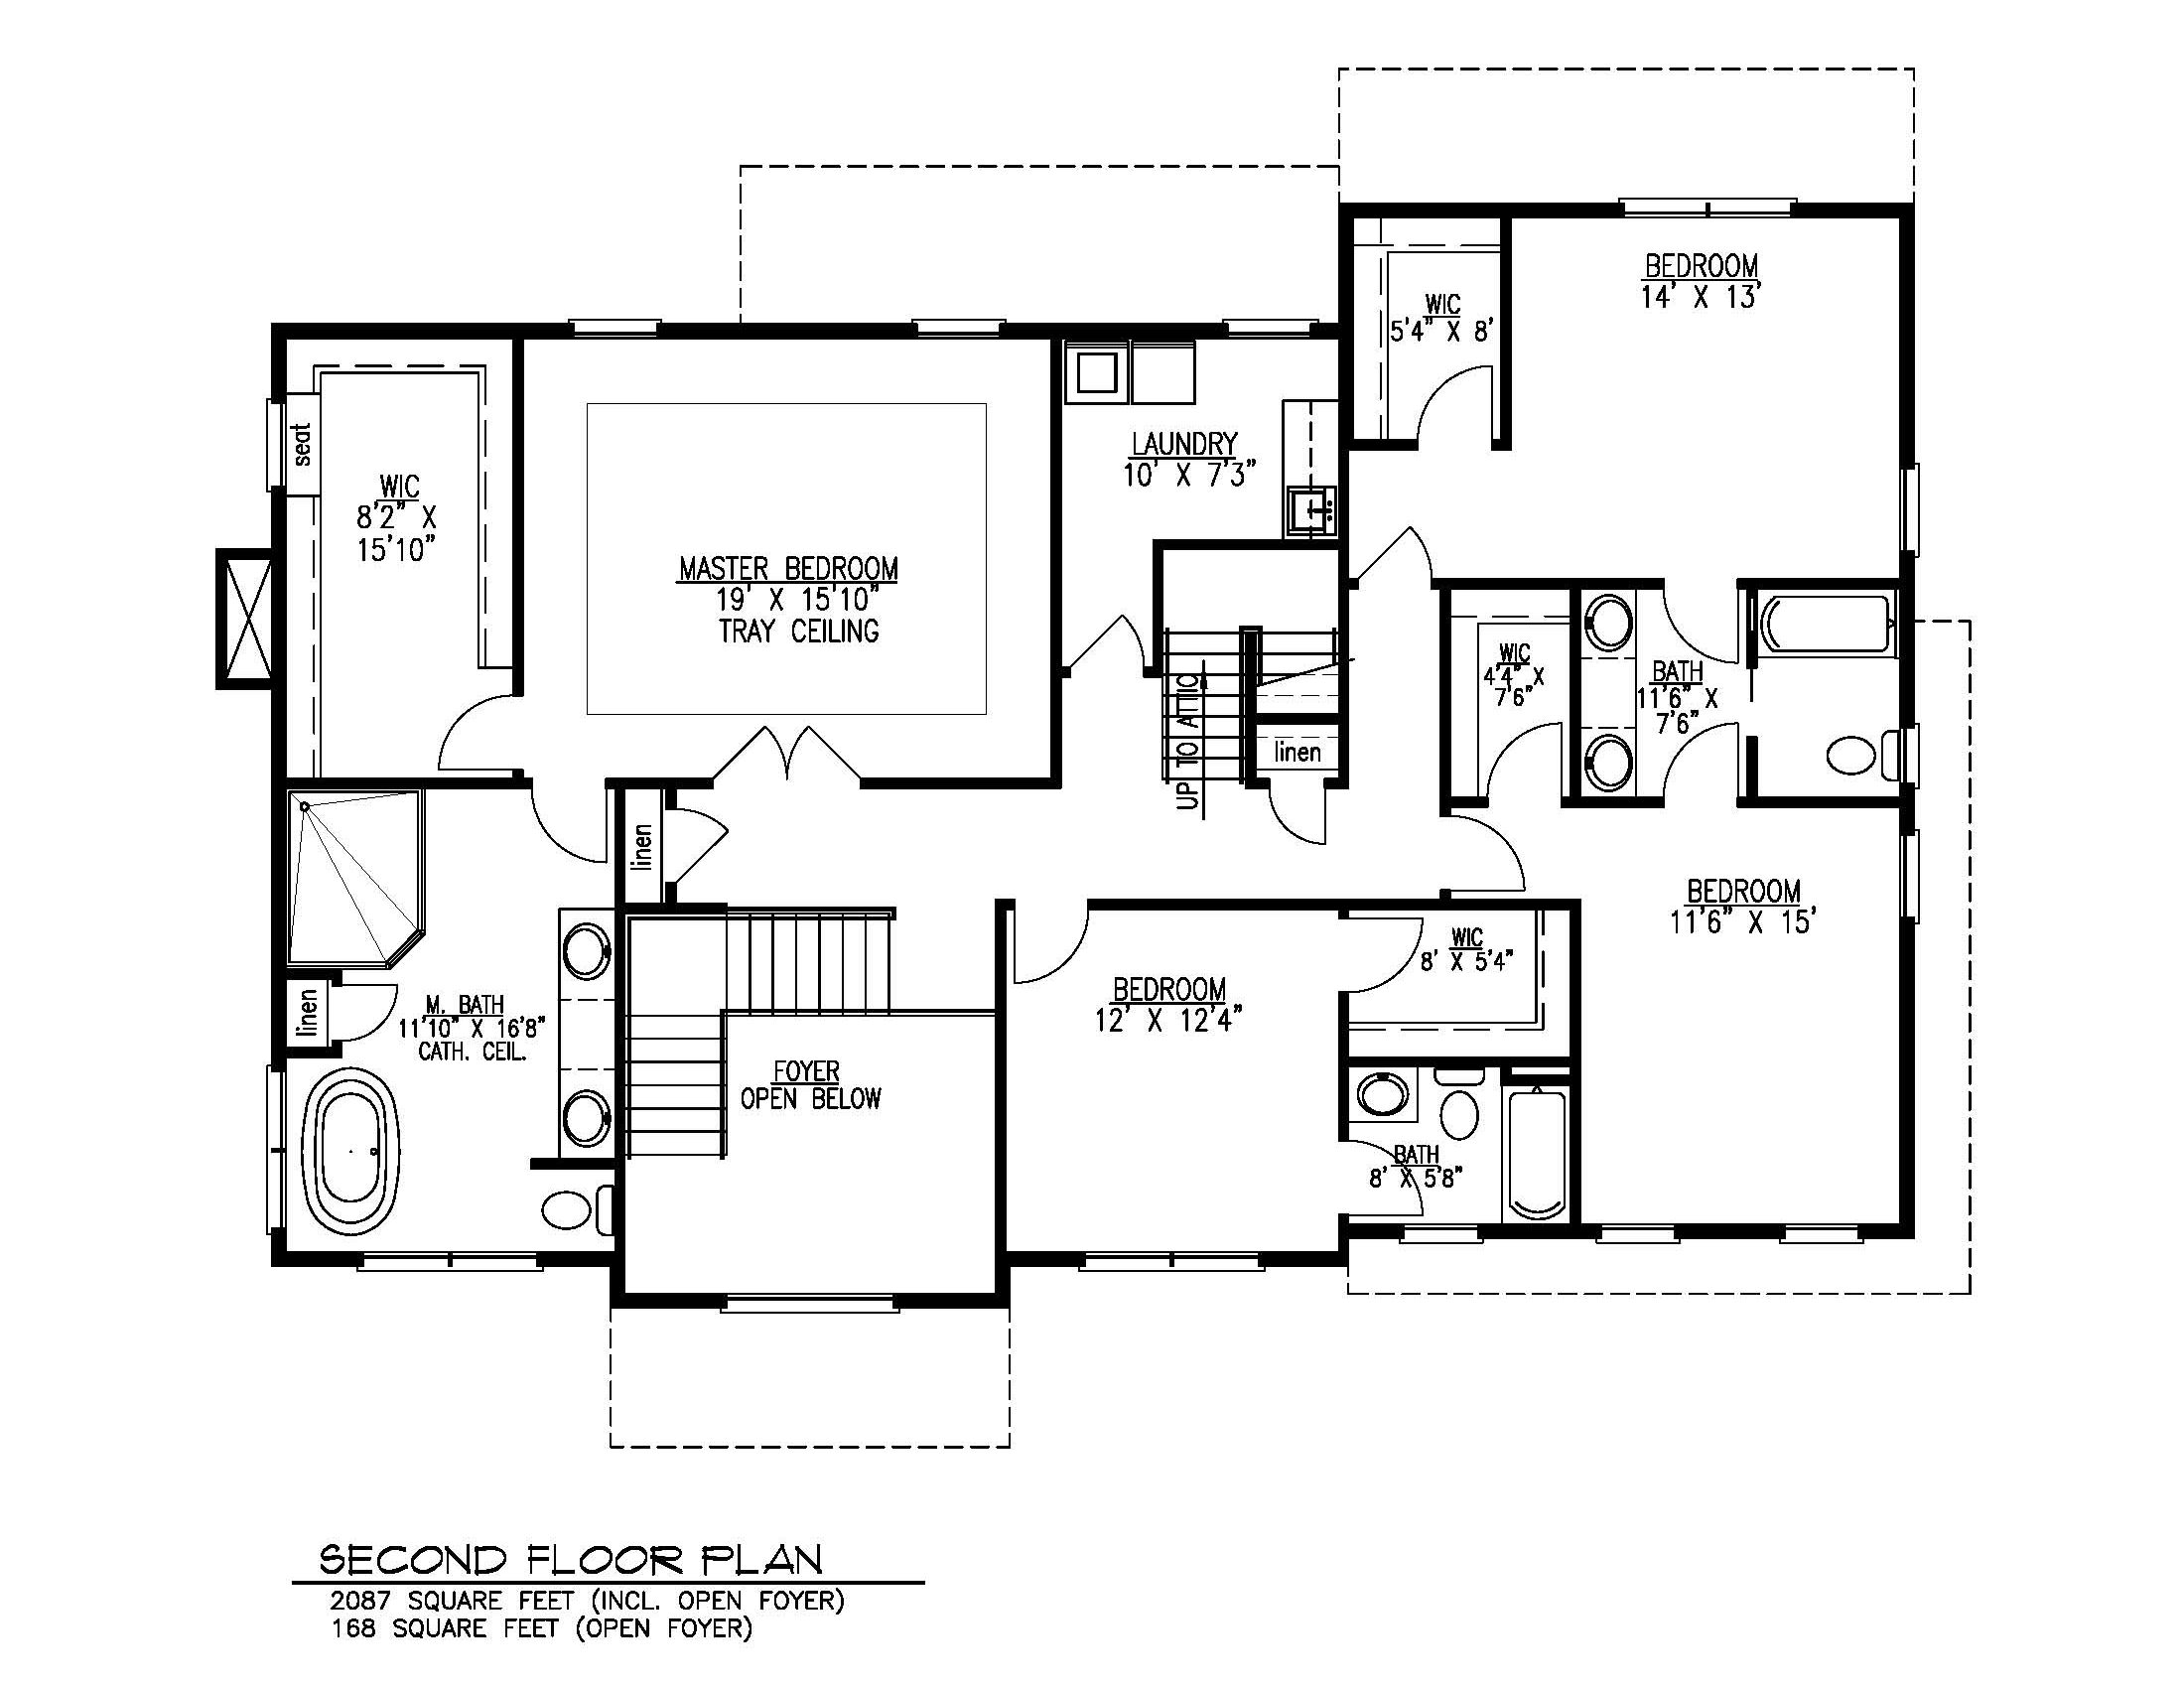 211 Golf Edge Second Floor Plan